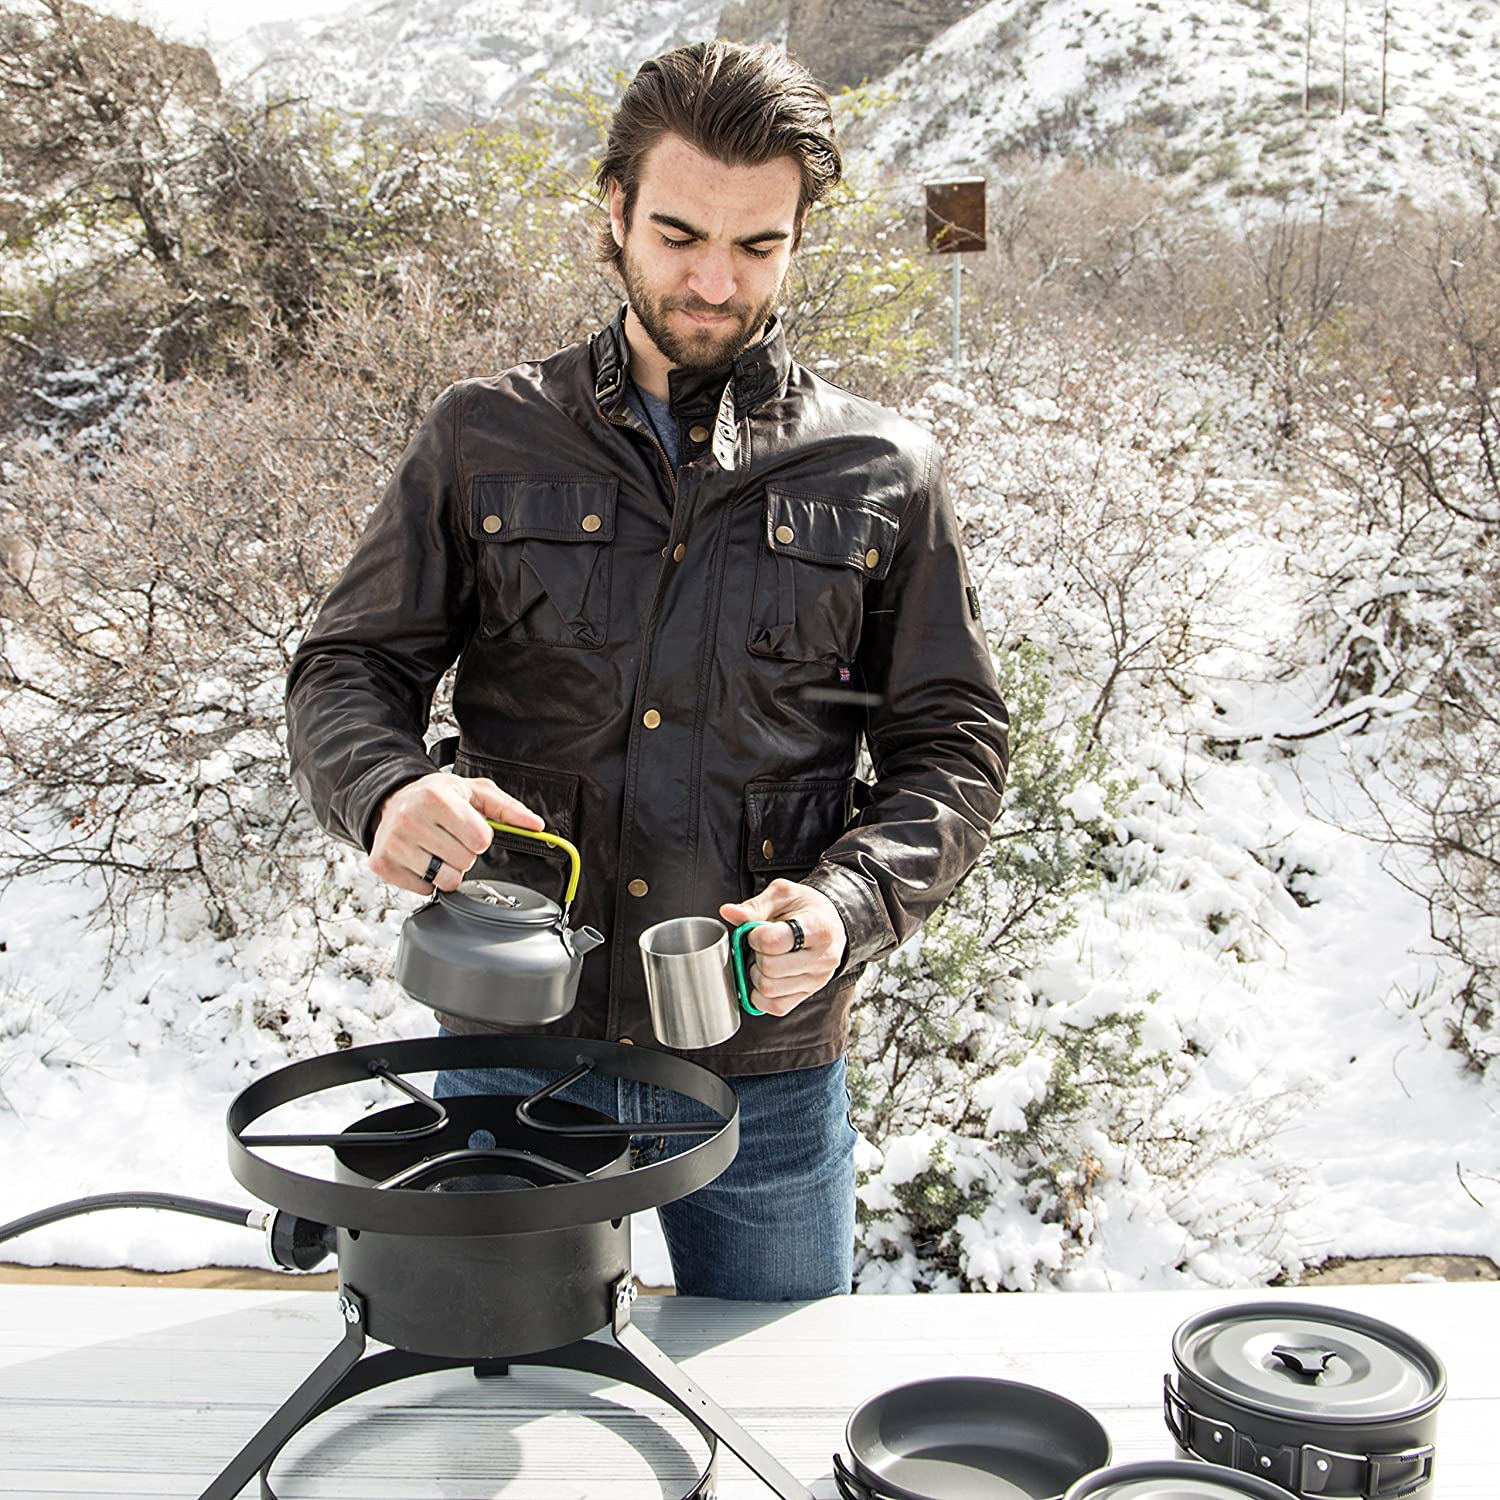 Lightweight Cooking Gear with Kettle SolSource Sport Cookset One Earth Designs Camping Cookware Set and Frying Pan Two Pots